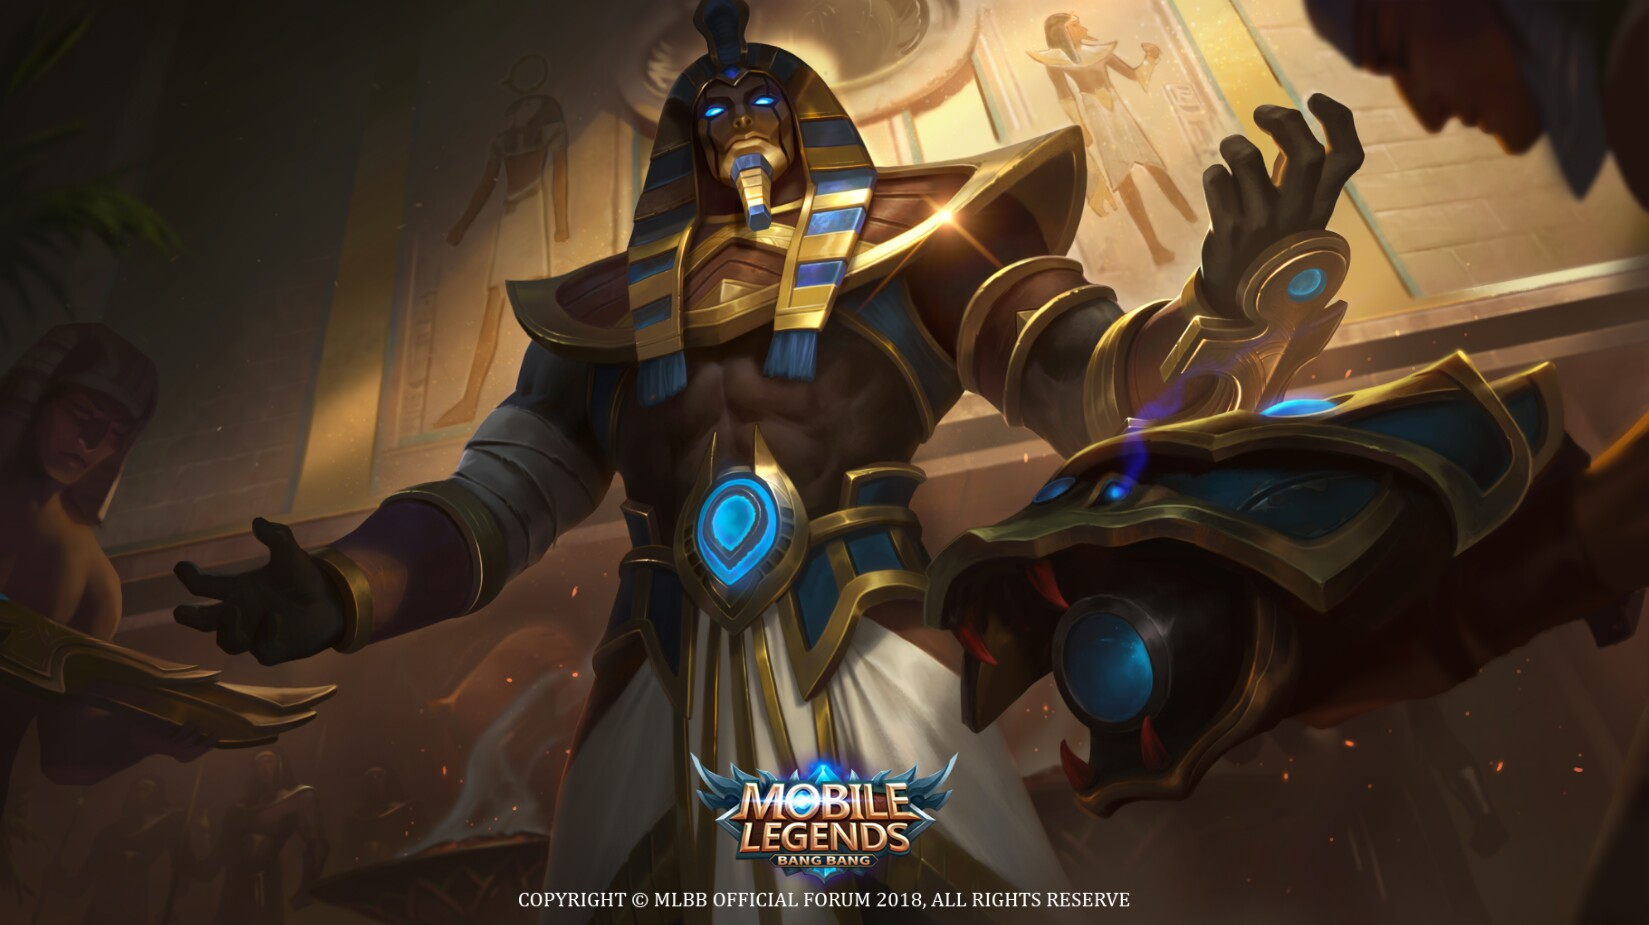 Roger_Skin03_Anubis_HD_Wallpaper-.png